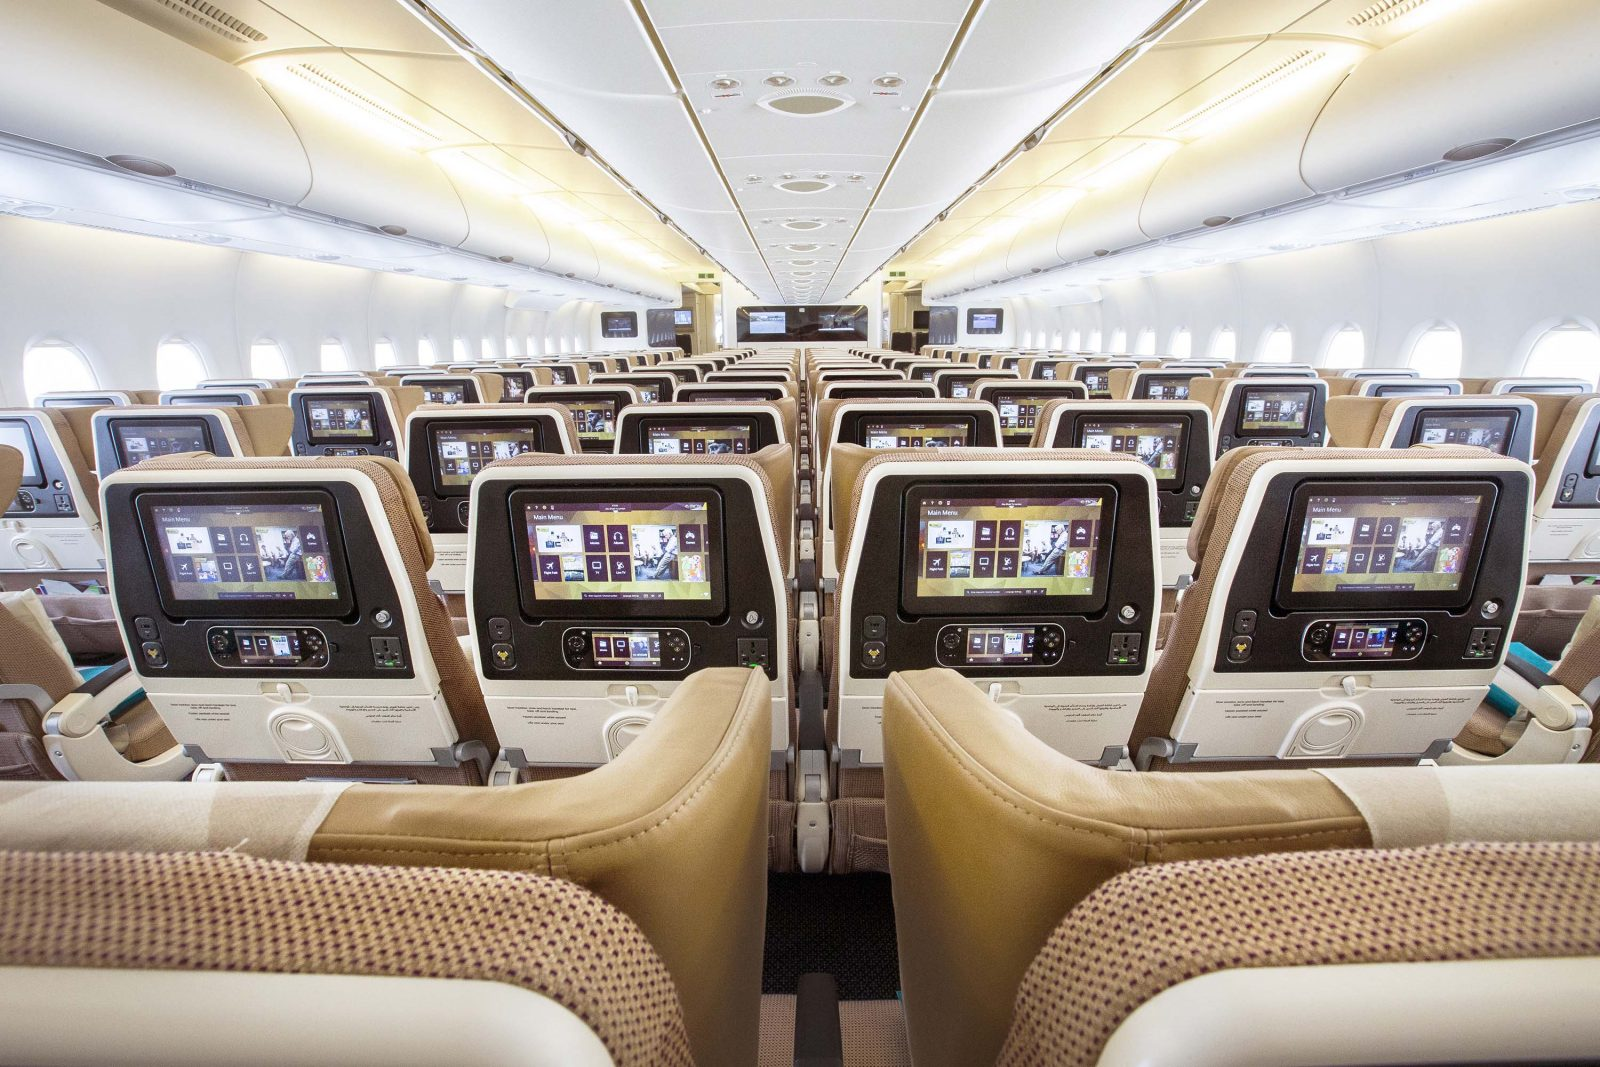 Etihad is First Middle East Airline to Launch Premium Economy Cabin - Kind Of...